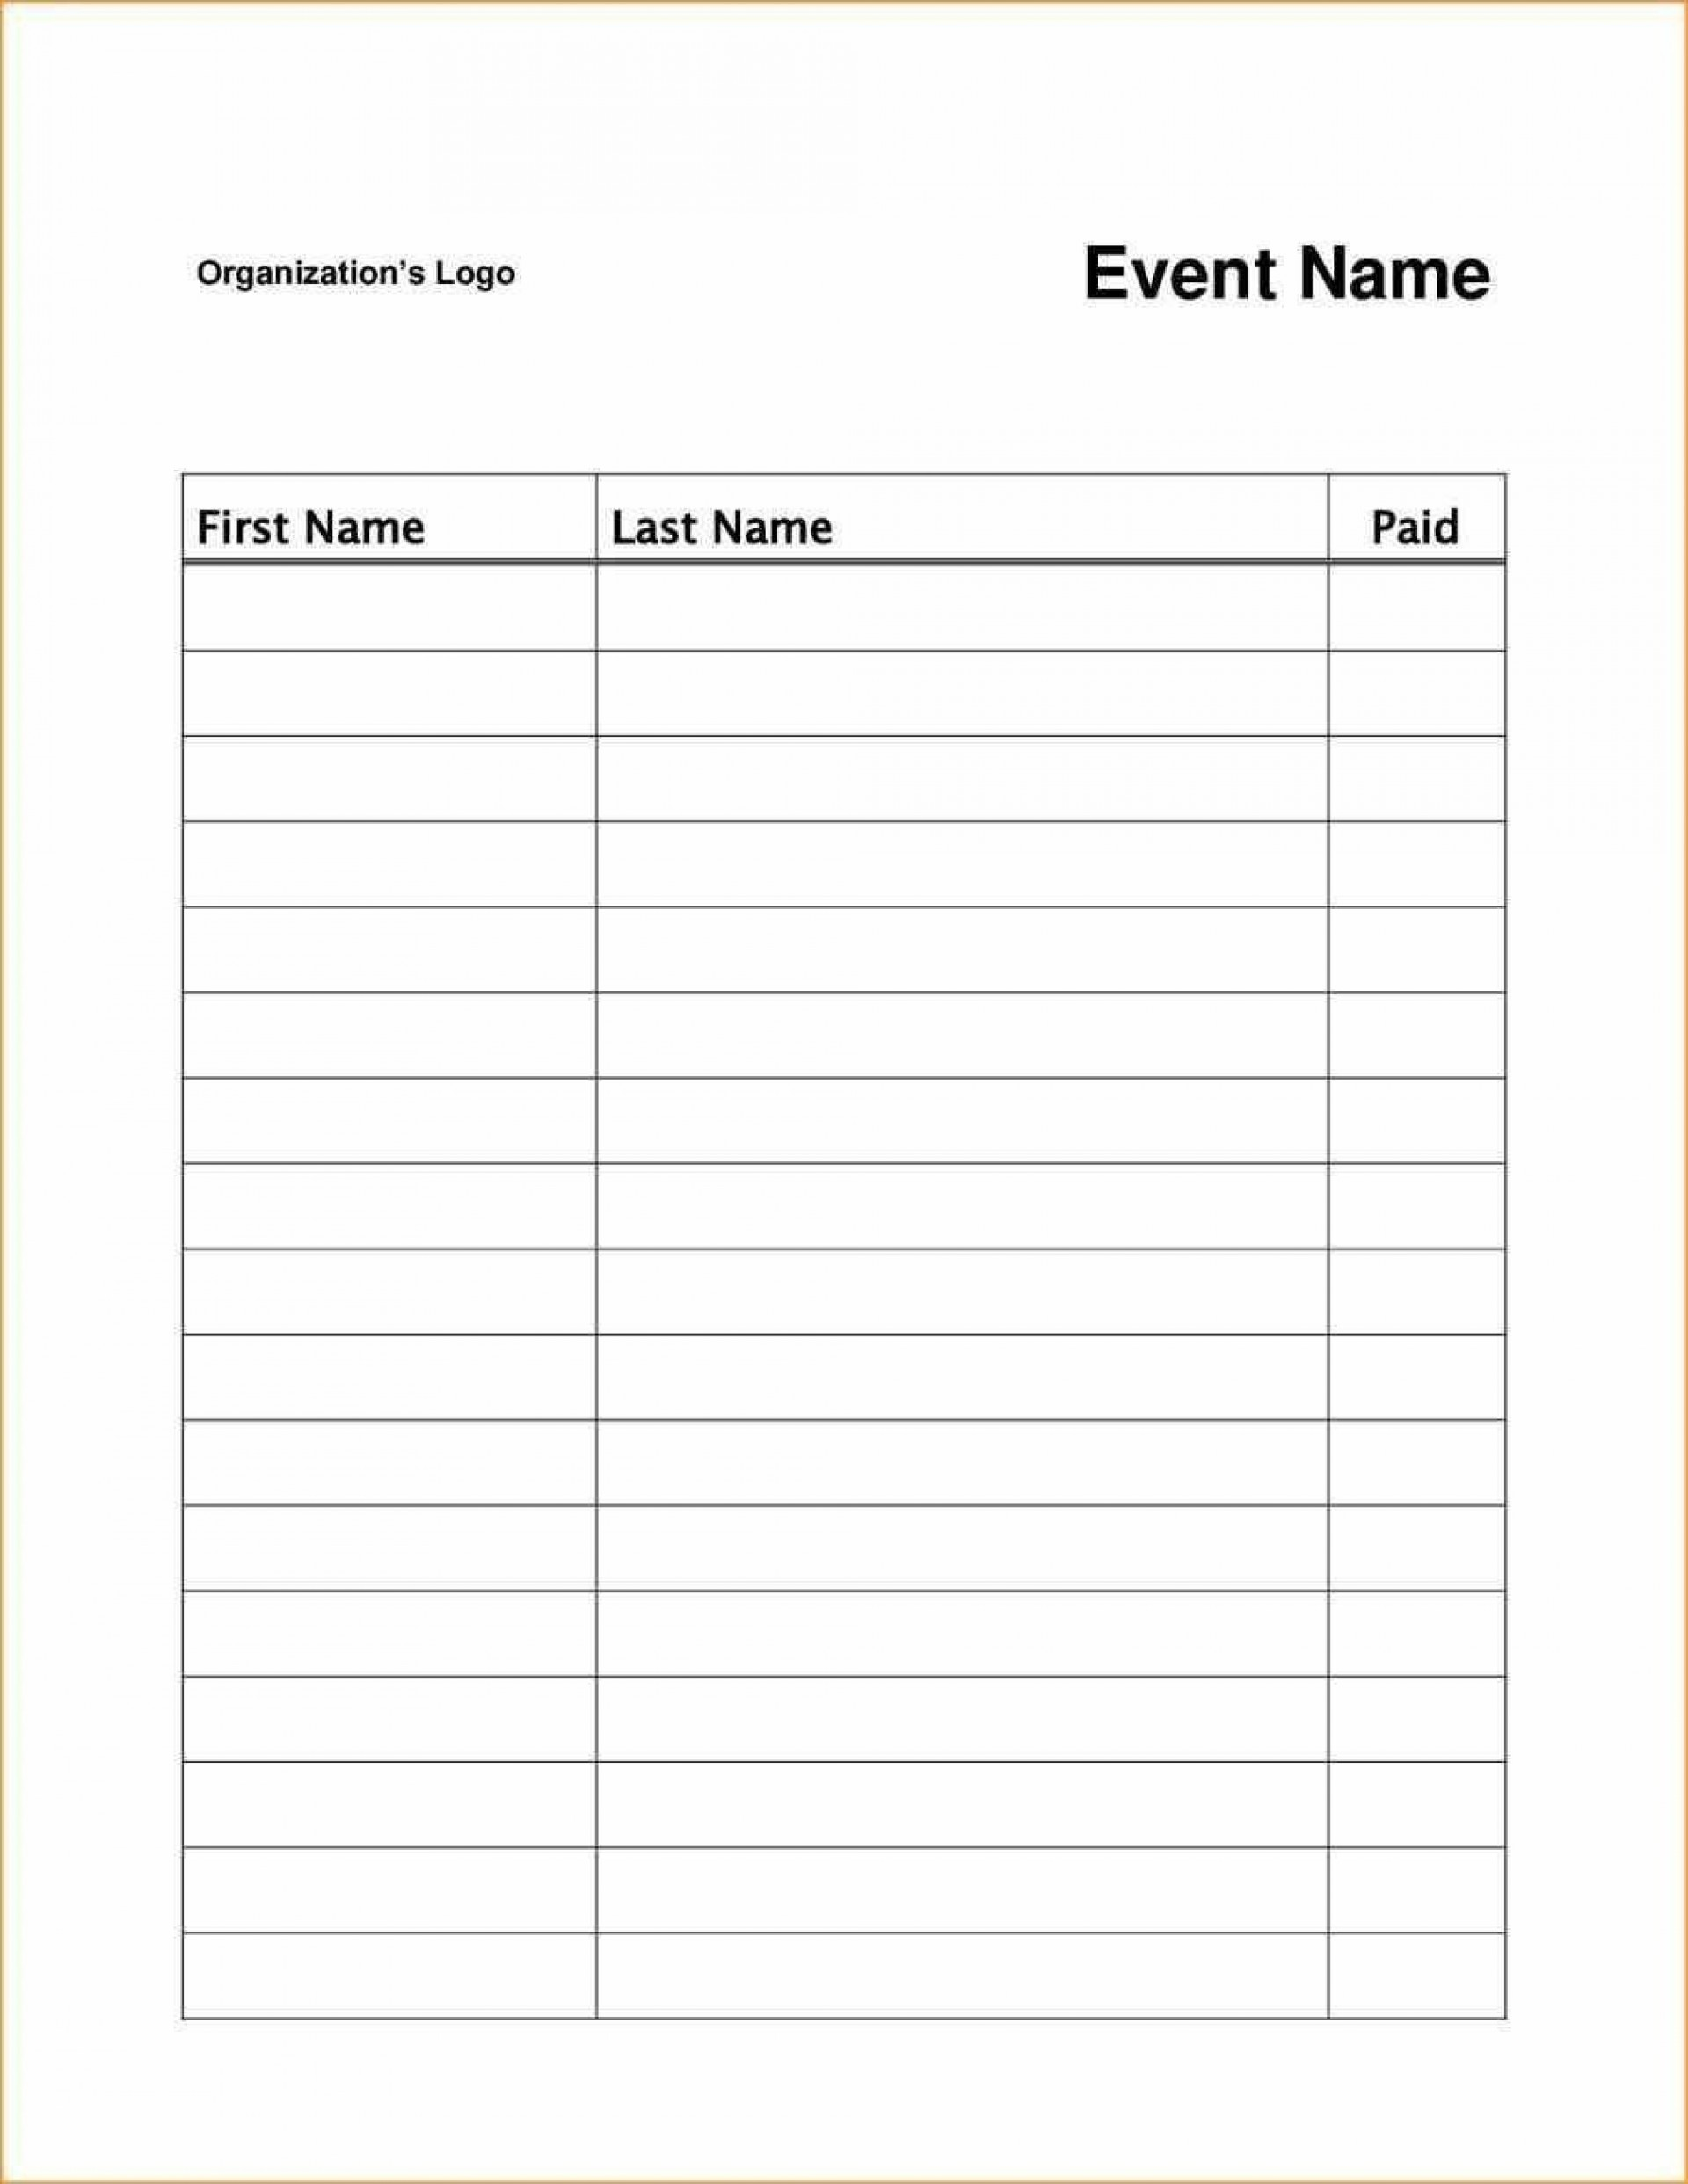 003 Breathtaking Pdf Sign Up Sheet Template High Resolution 1920